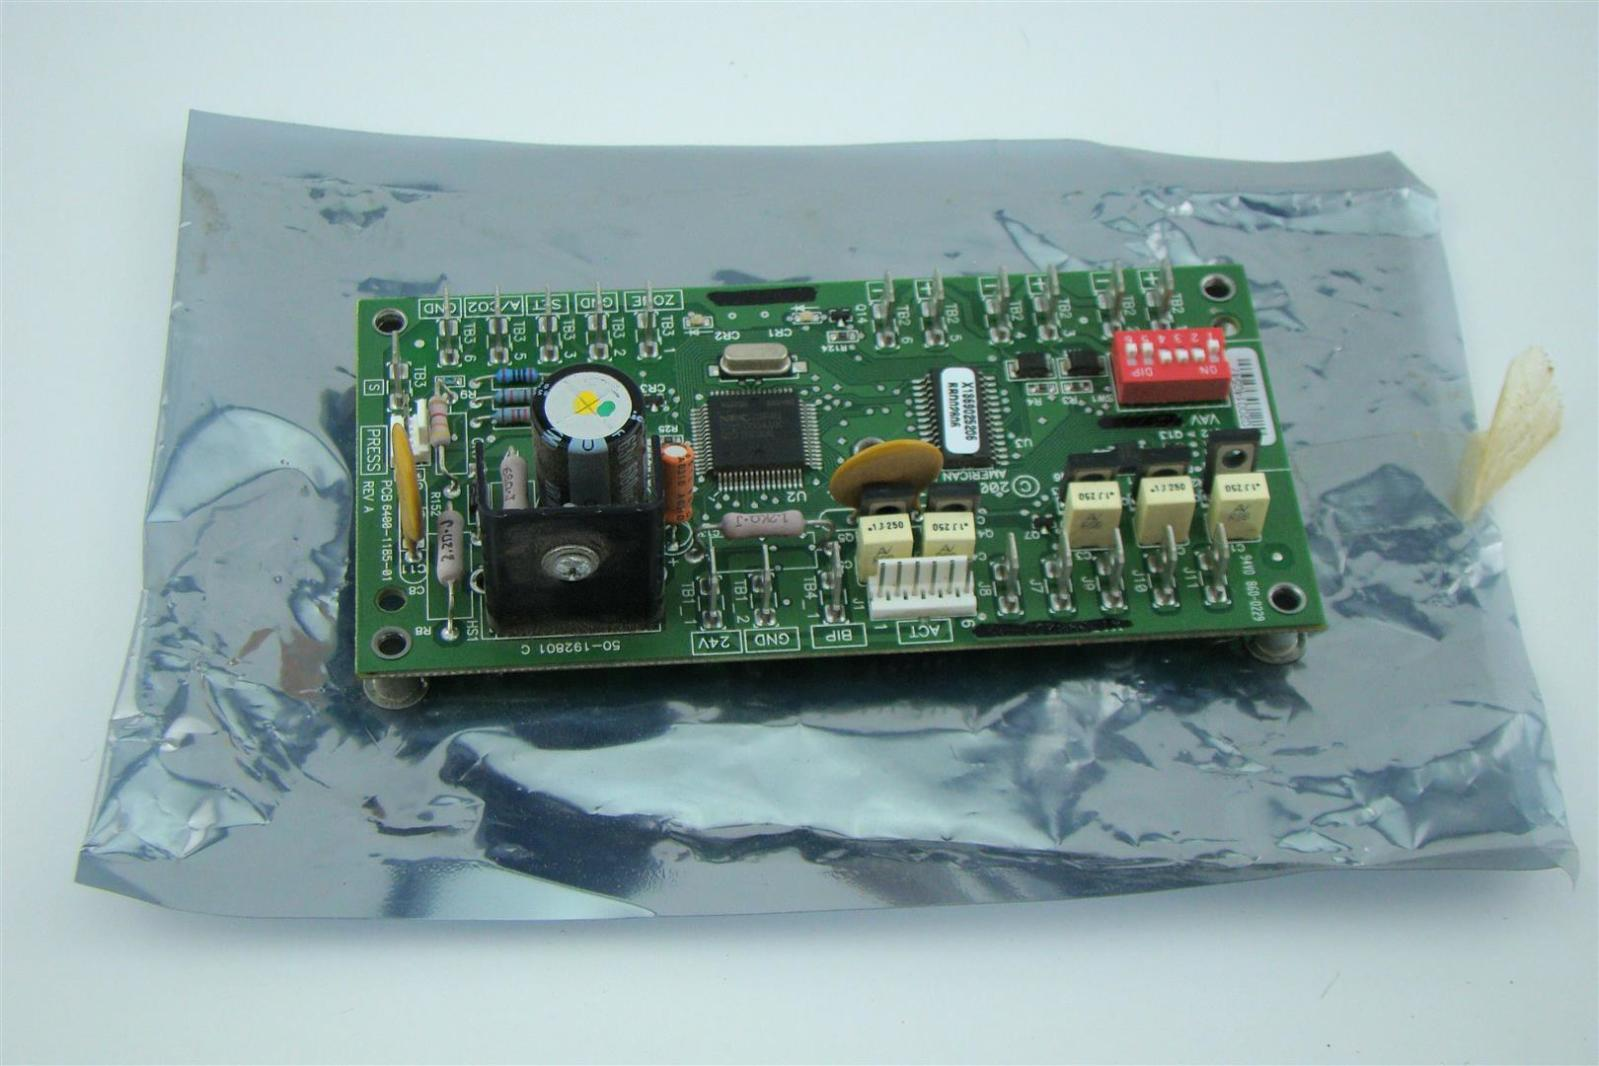 Trane Variable Air Volume Control Circuit Board Pcb 6400 1185 01 Ebay Switch Pcbpcb Boardpcb Manufacturing Product